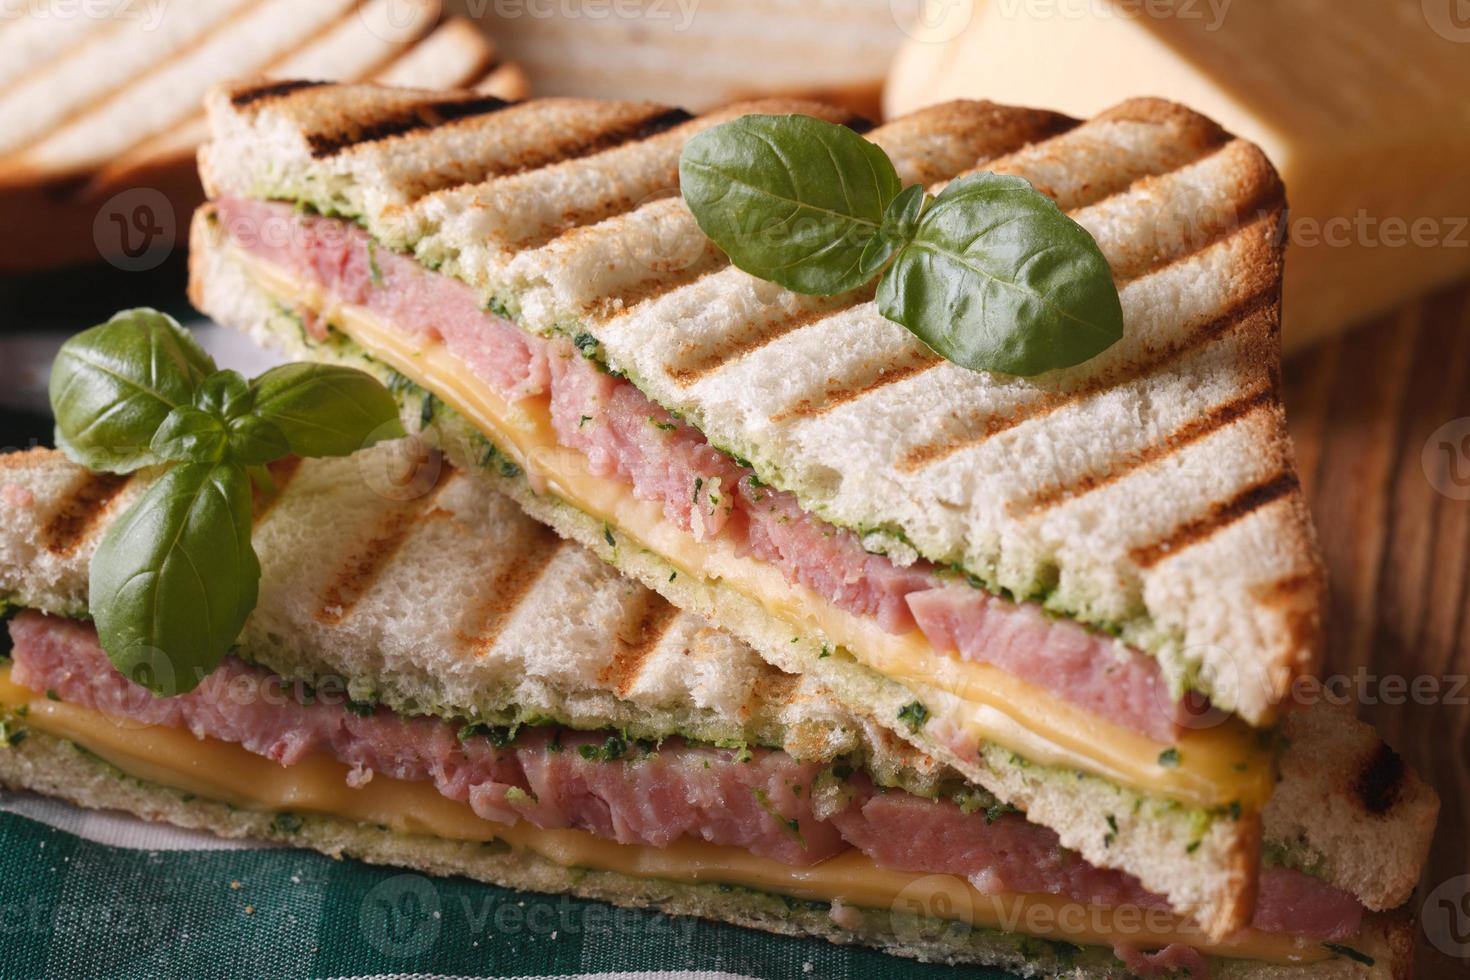 Grilled sandwich with ham, cheese and basil closeup photo